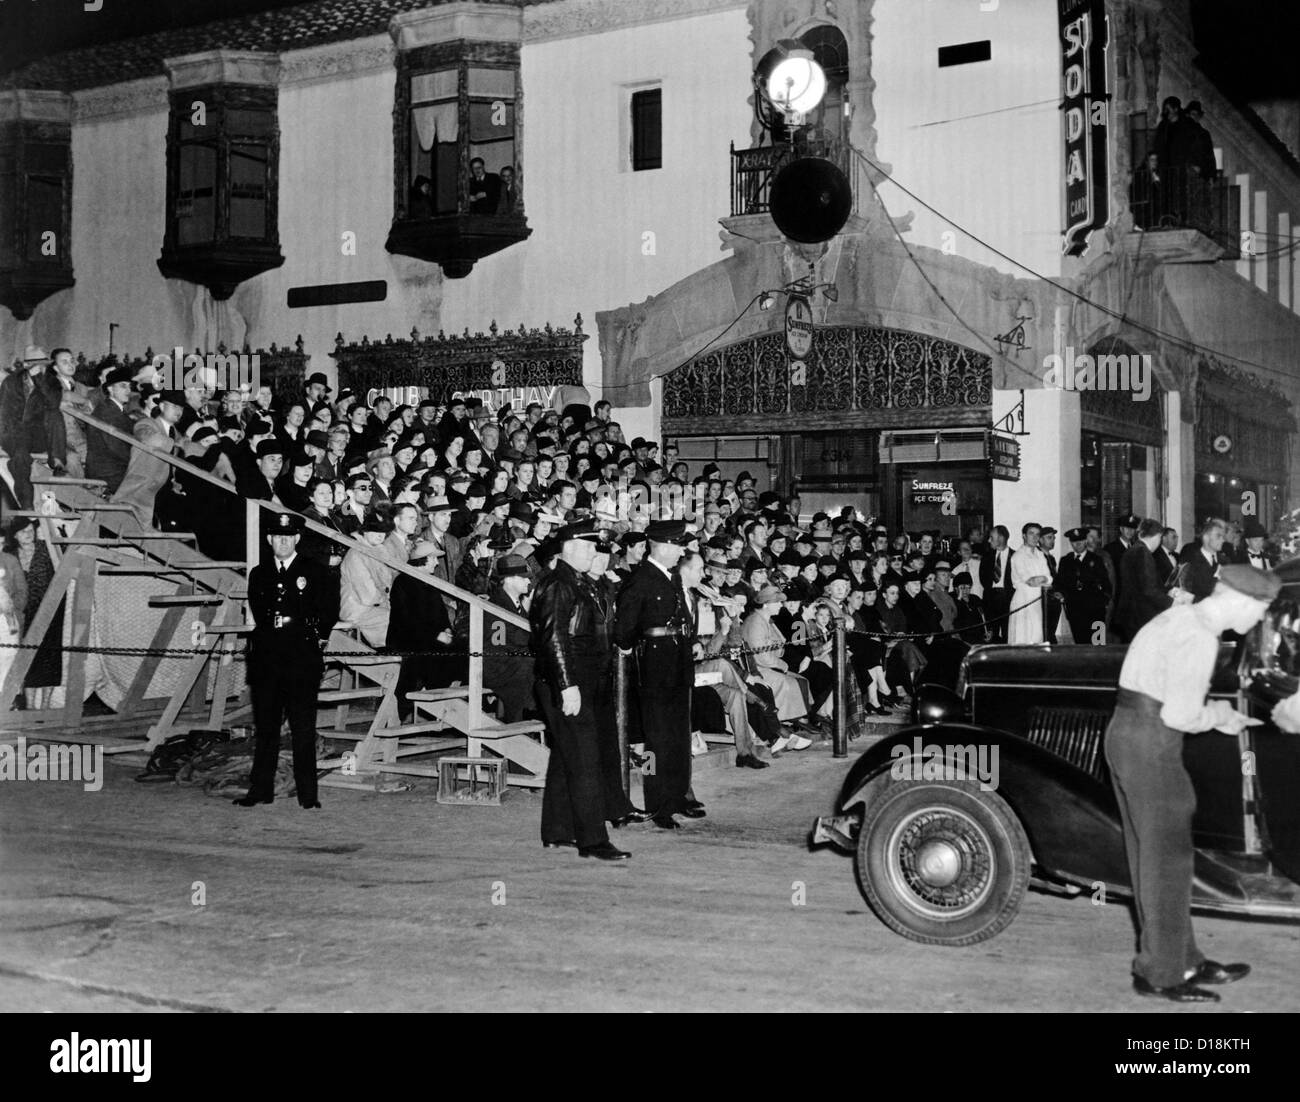 Grand stand built for Hollywood premiere of 'Lloyds of London'. It was built so movie fans could watch as - Stock Image